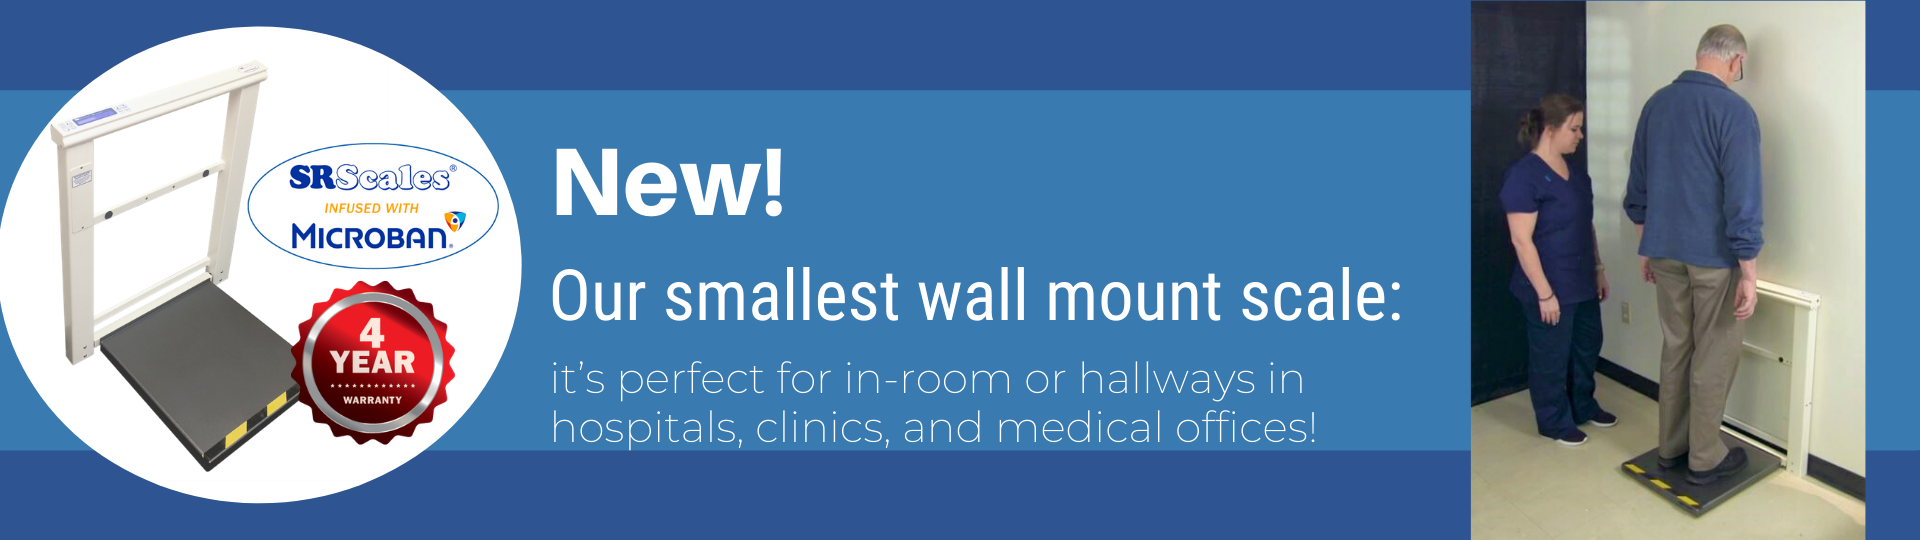 New Wallmount Scale